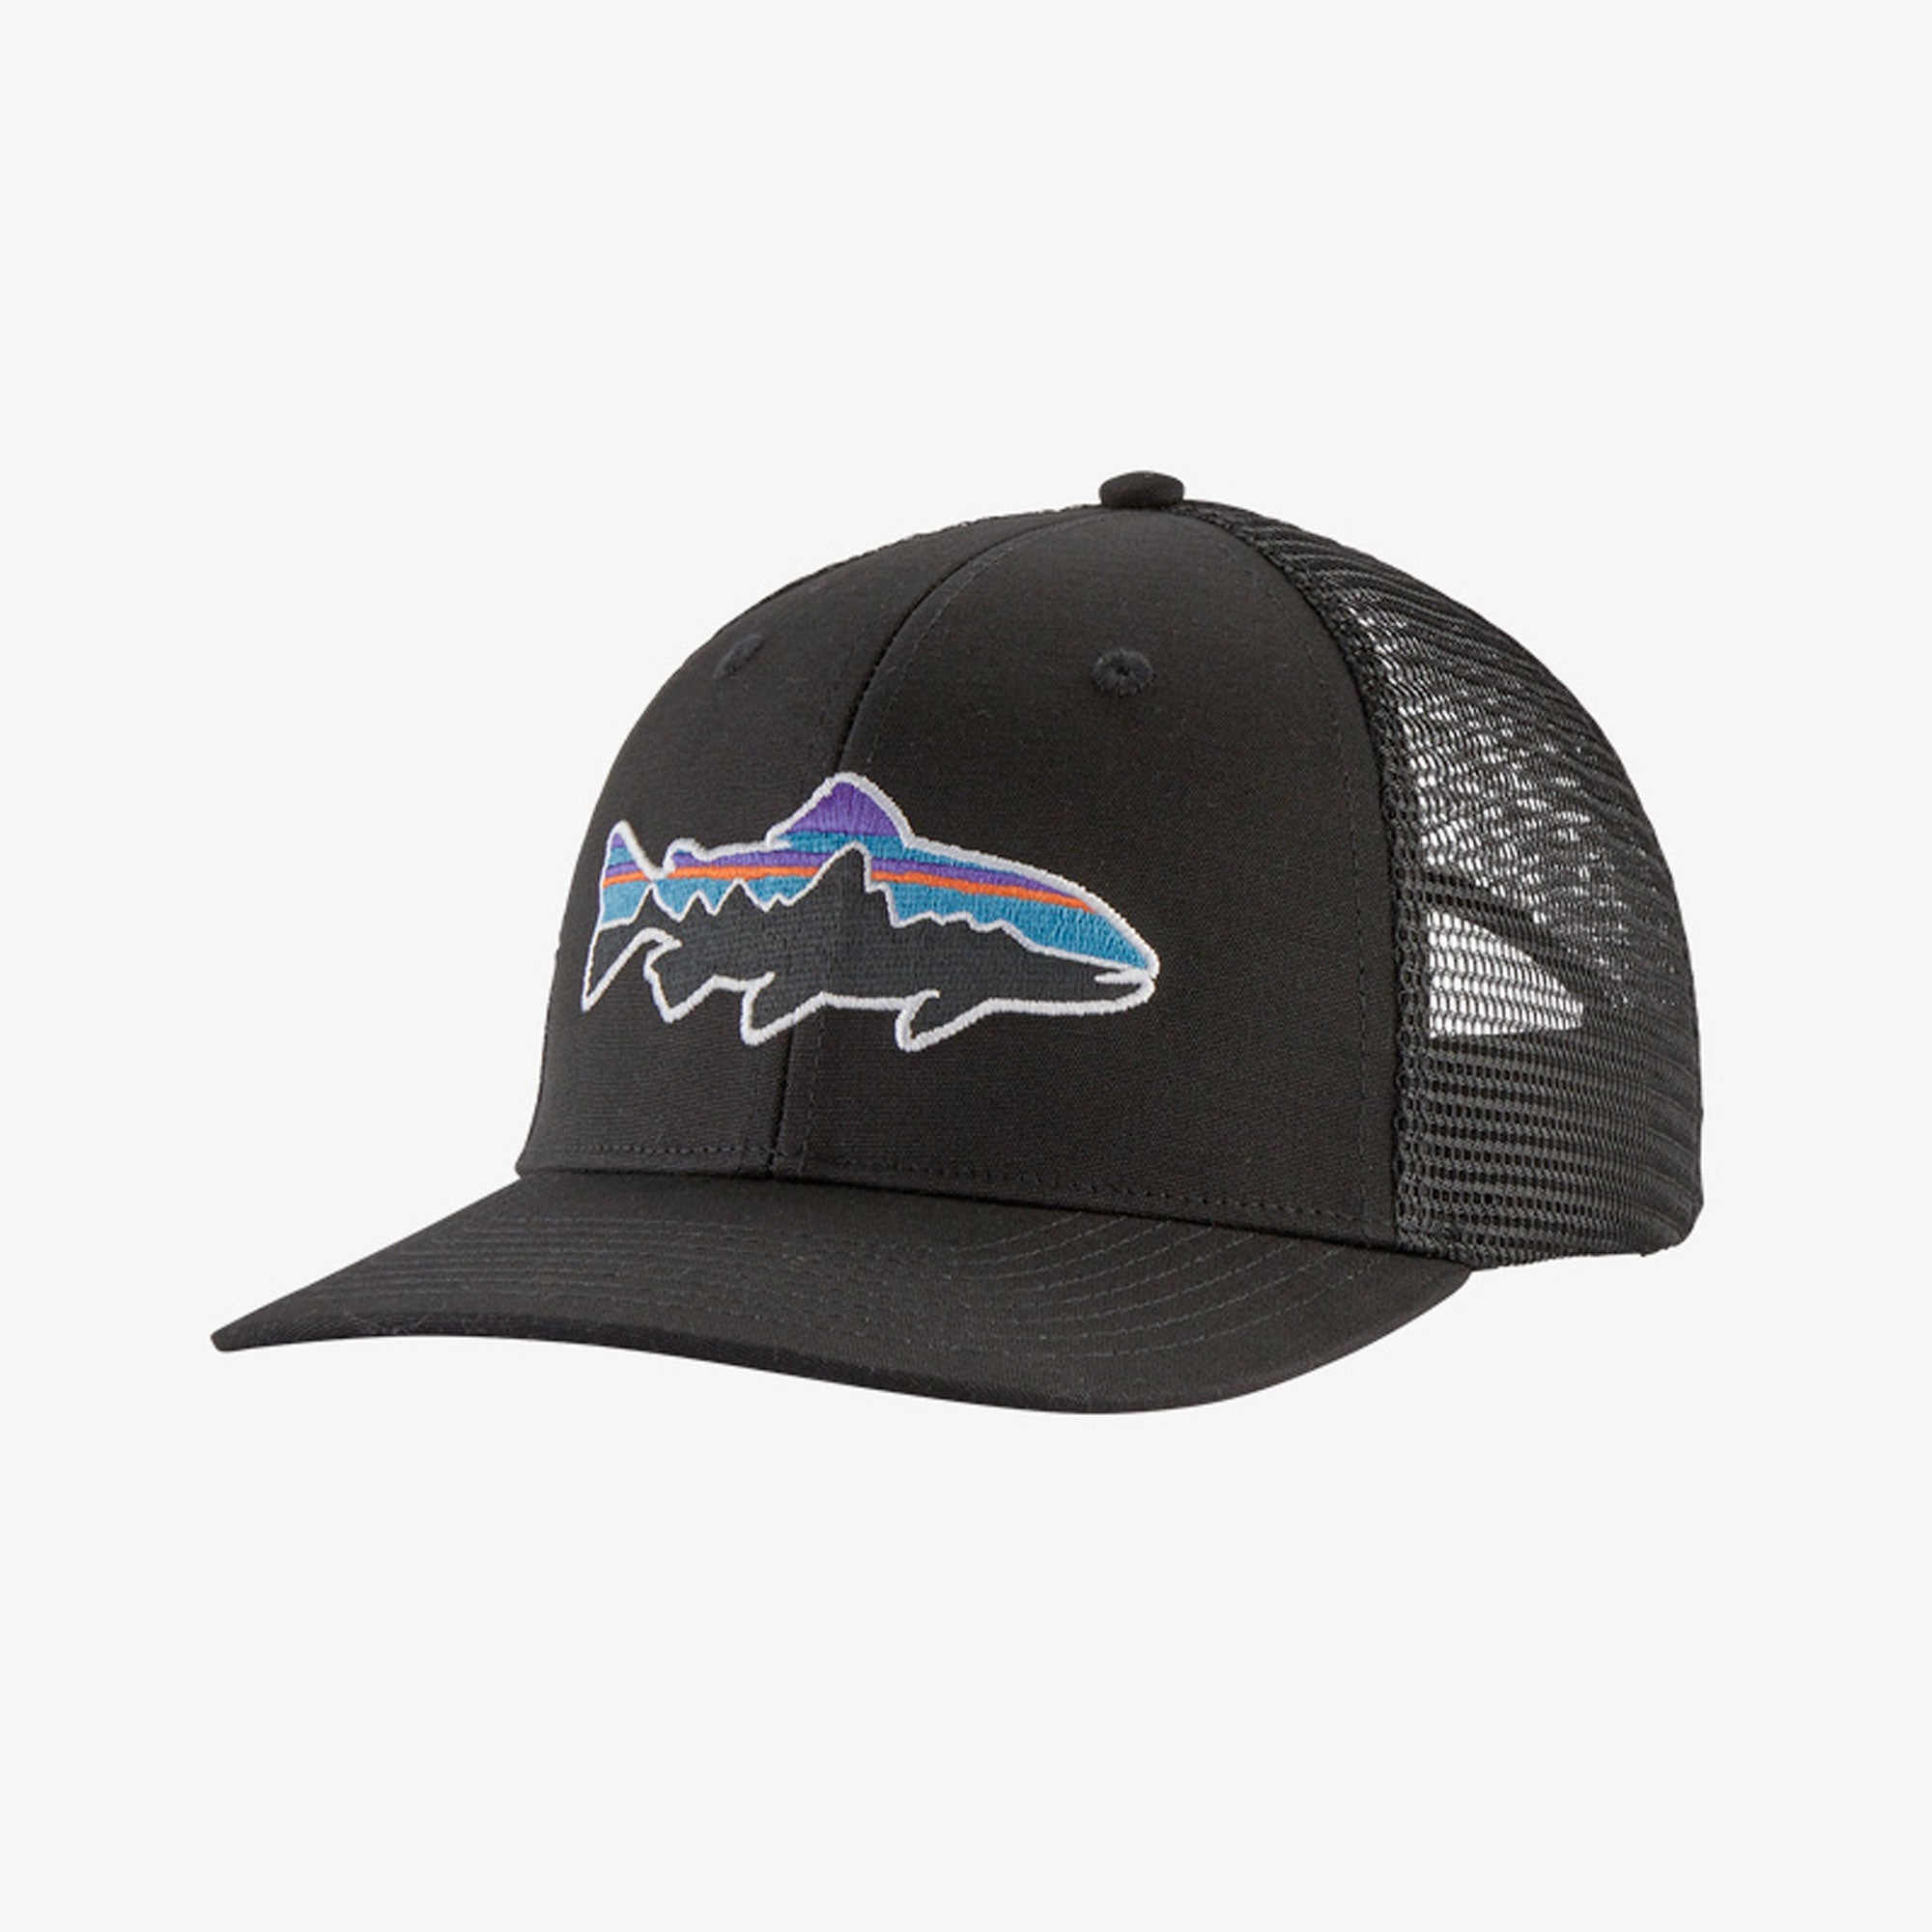 Patagonia Fitz Roy Trout Men's Trucker Hat